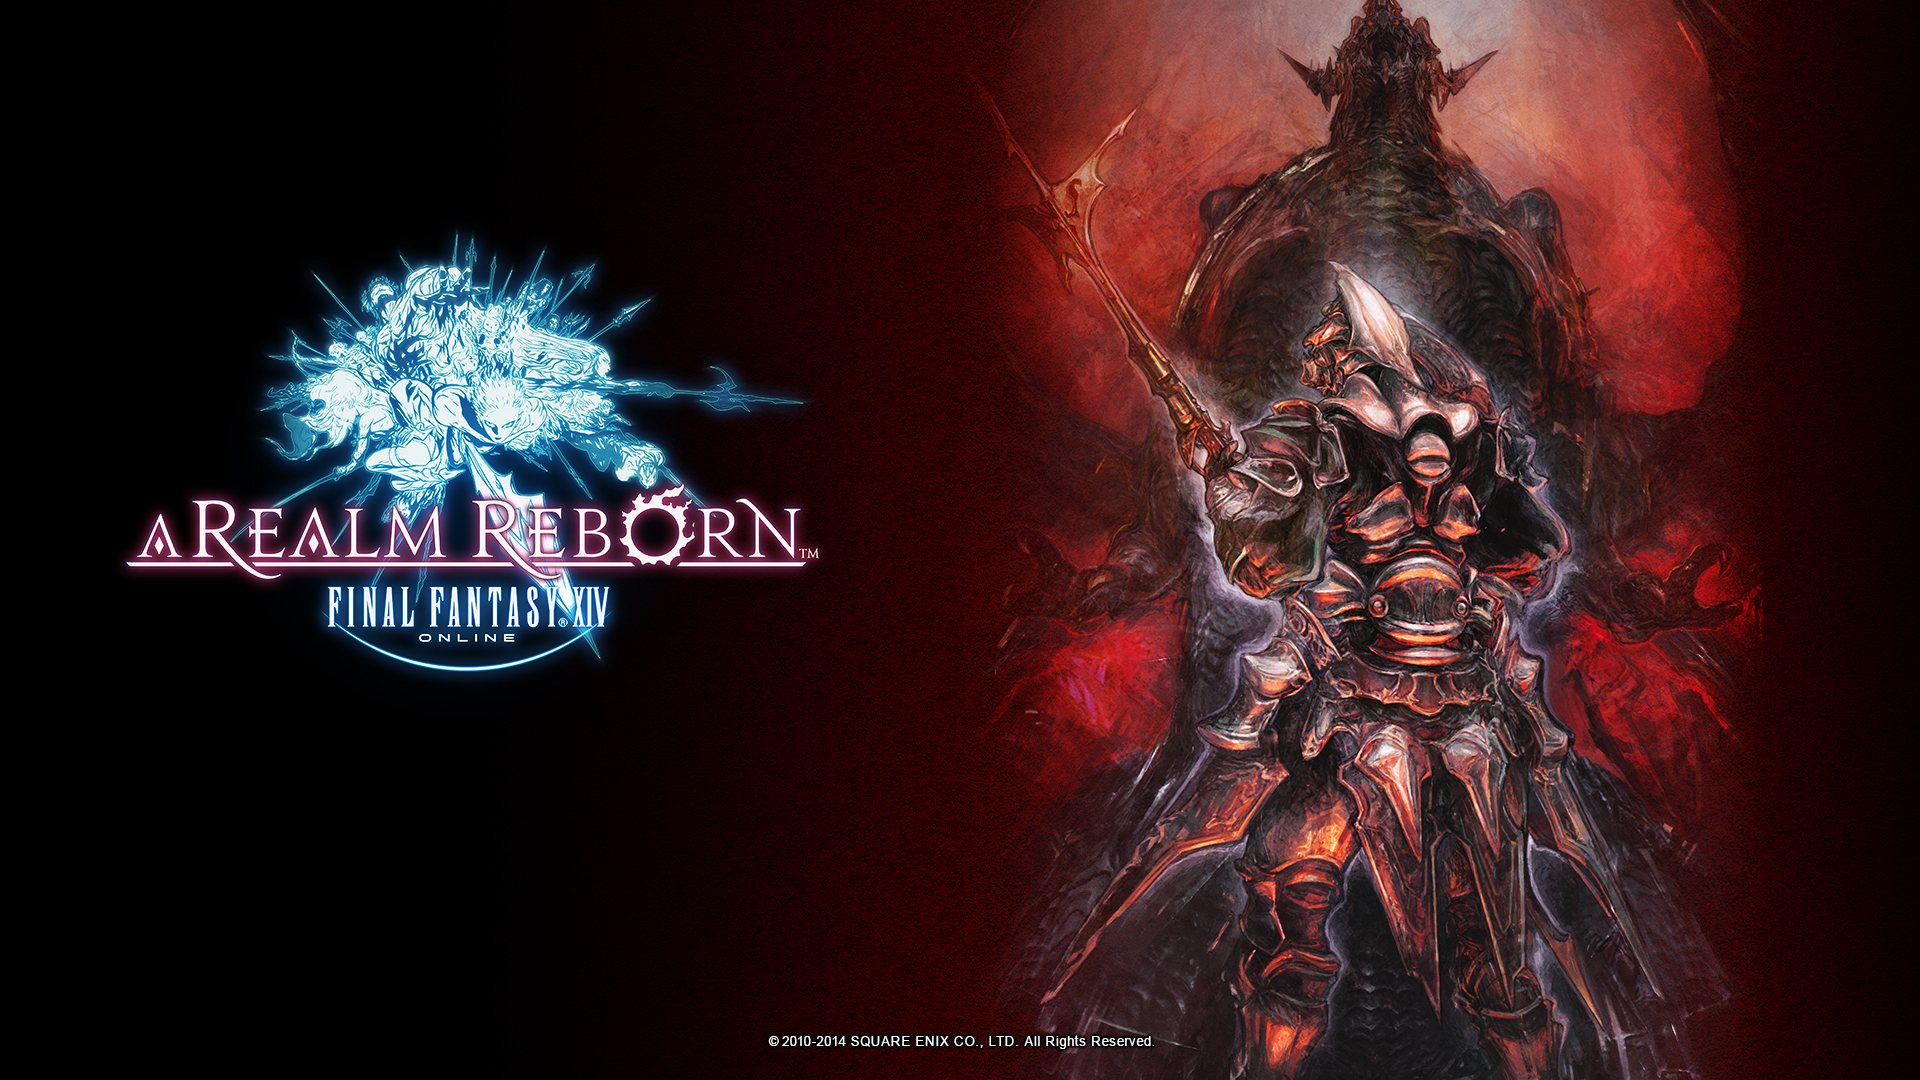 Kingdom Hearts Iphone Wallpaper Ffxiv Pcw09004 1920x1080 En Square Portal